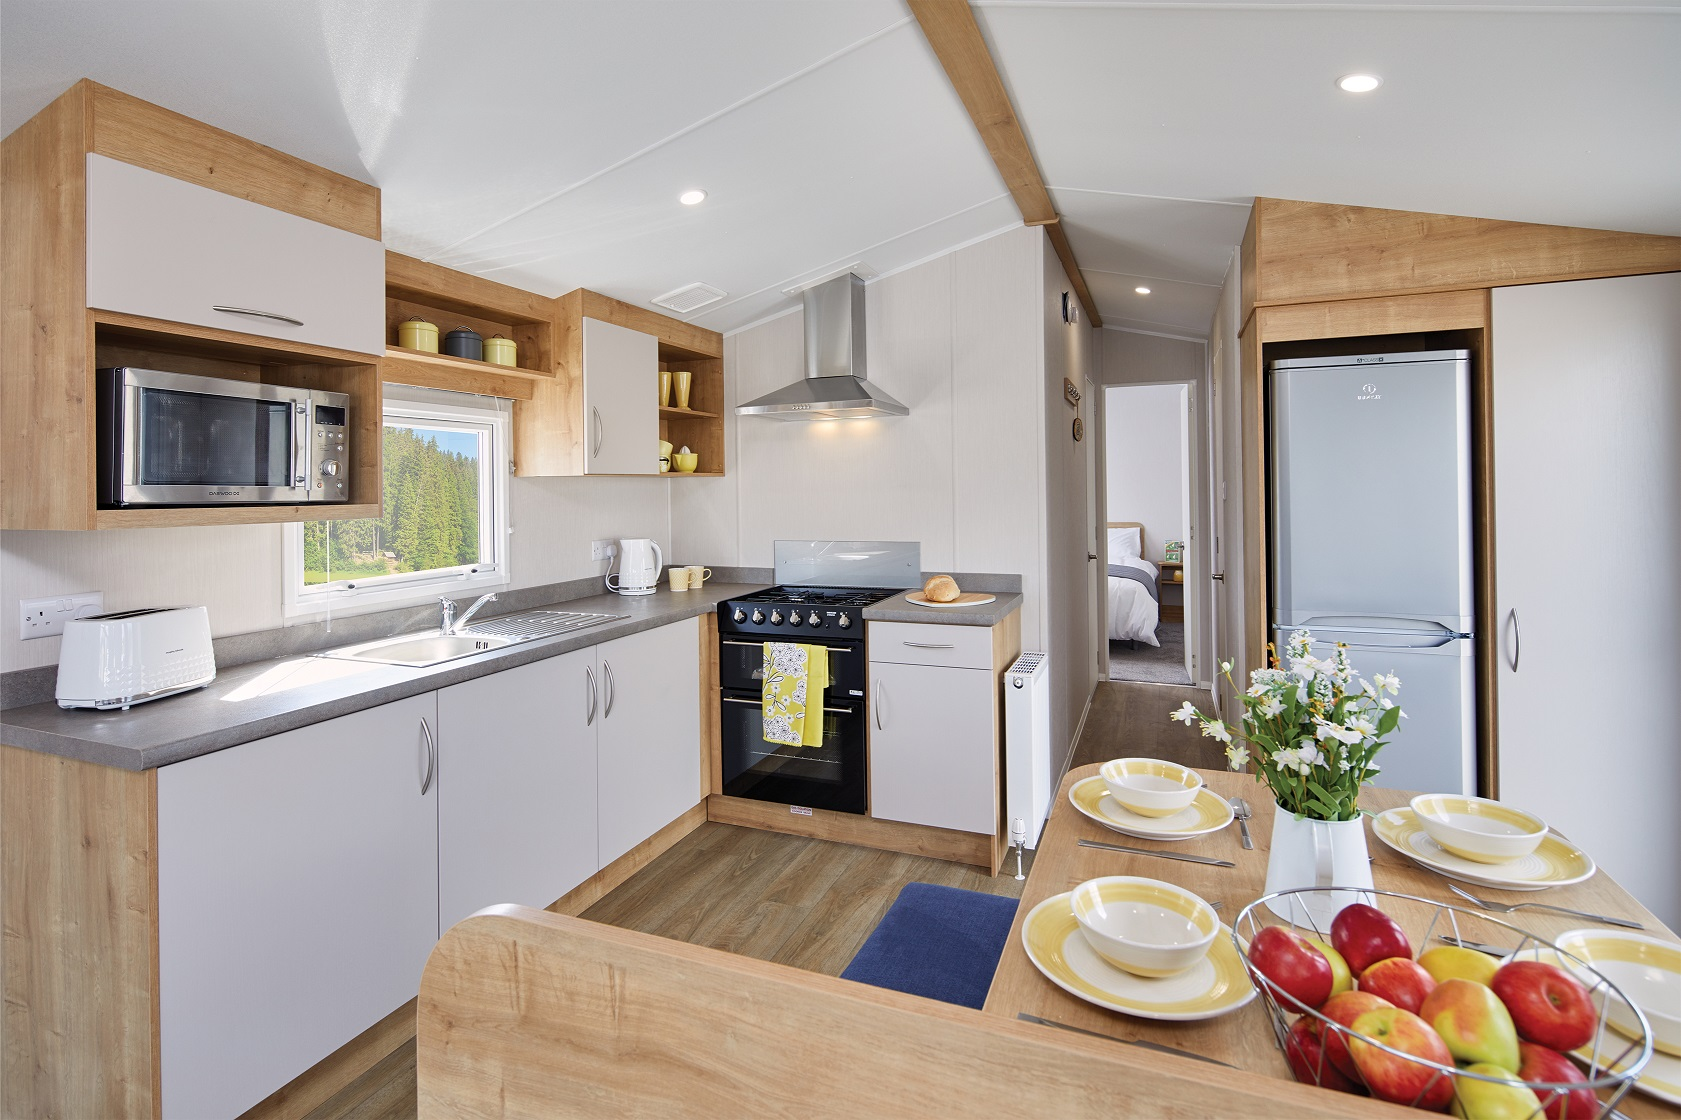 Willerby Kelston: Static Caravans and Holiday Homes for Sale on Caravan Parks, Belford, Northumberland Large Image 3